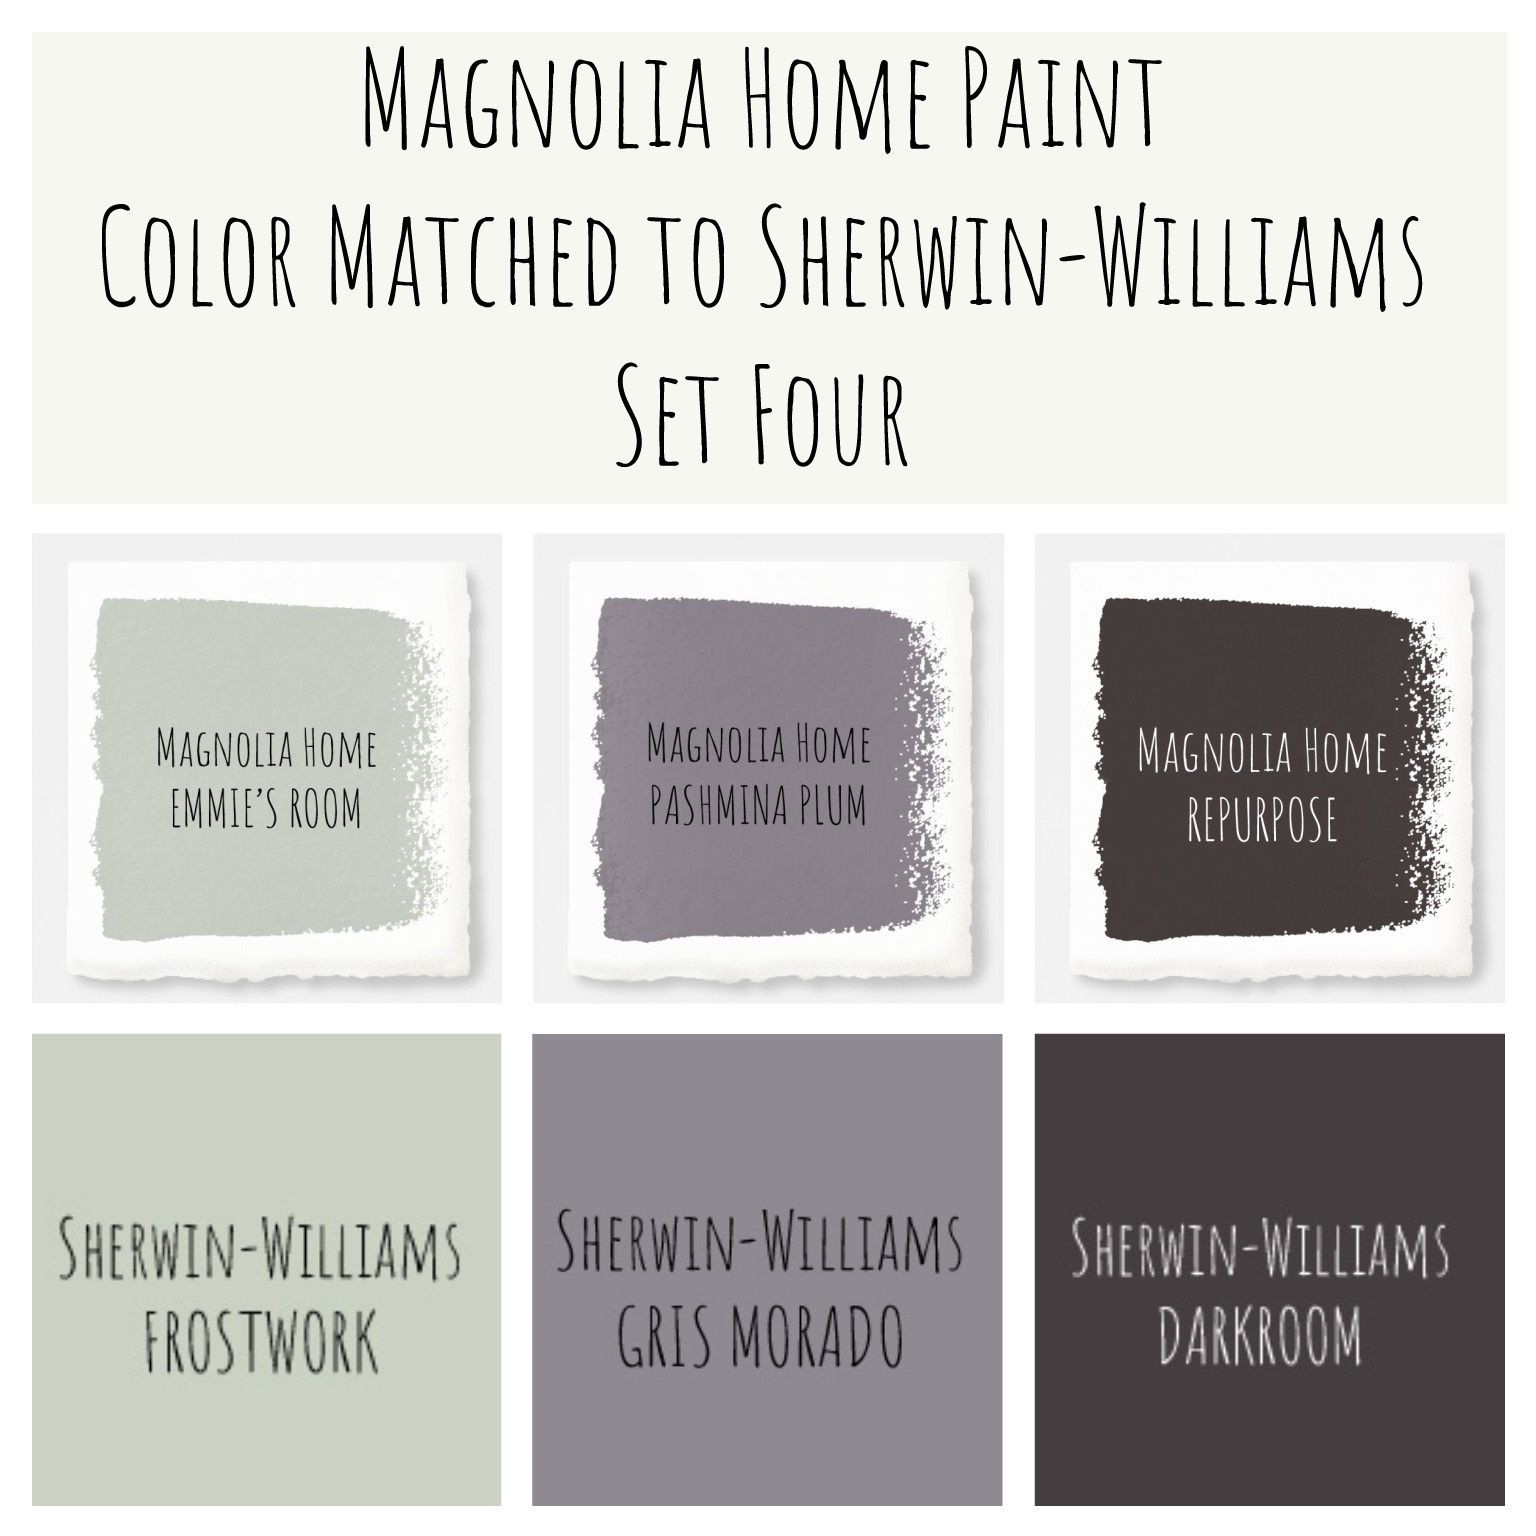 Best ideas about Joanna Gaines Paint Colors Sherwin Williams . Save or Pin Joanna Gaines Magnolia Home paint color matched to Sherwin Now.